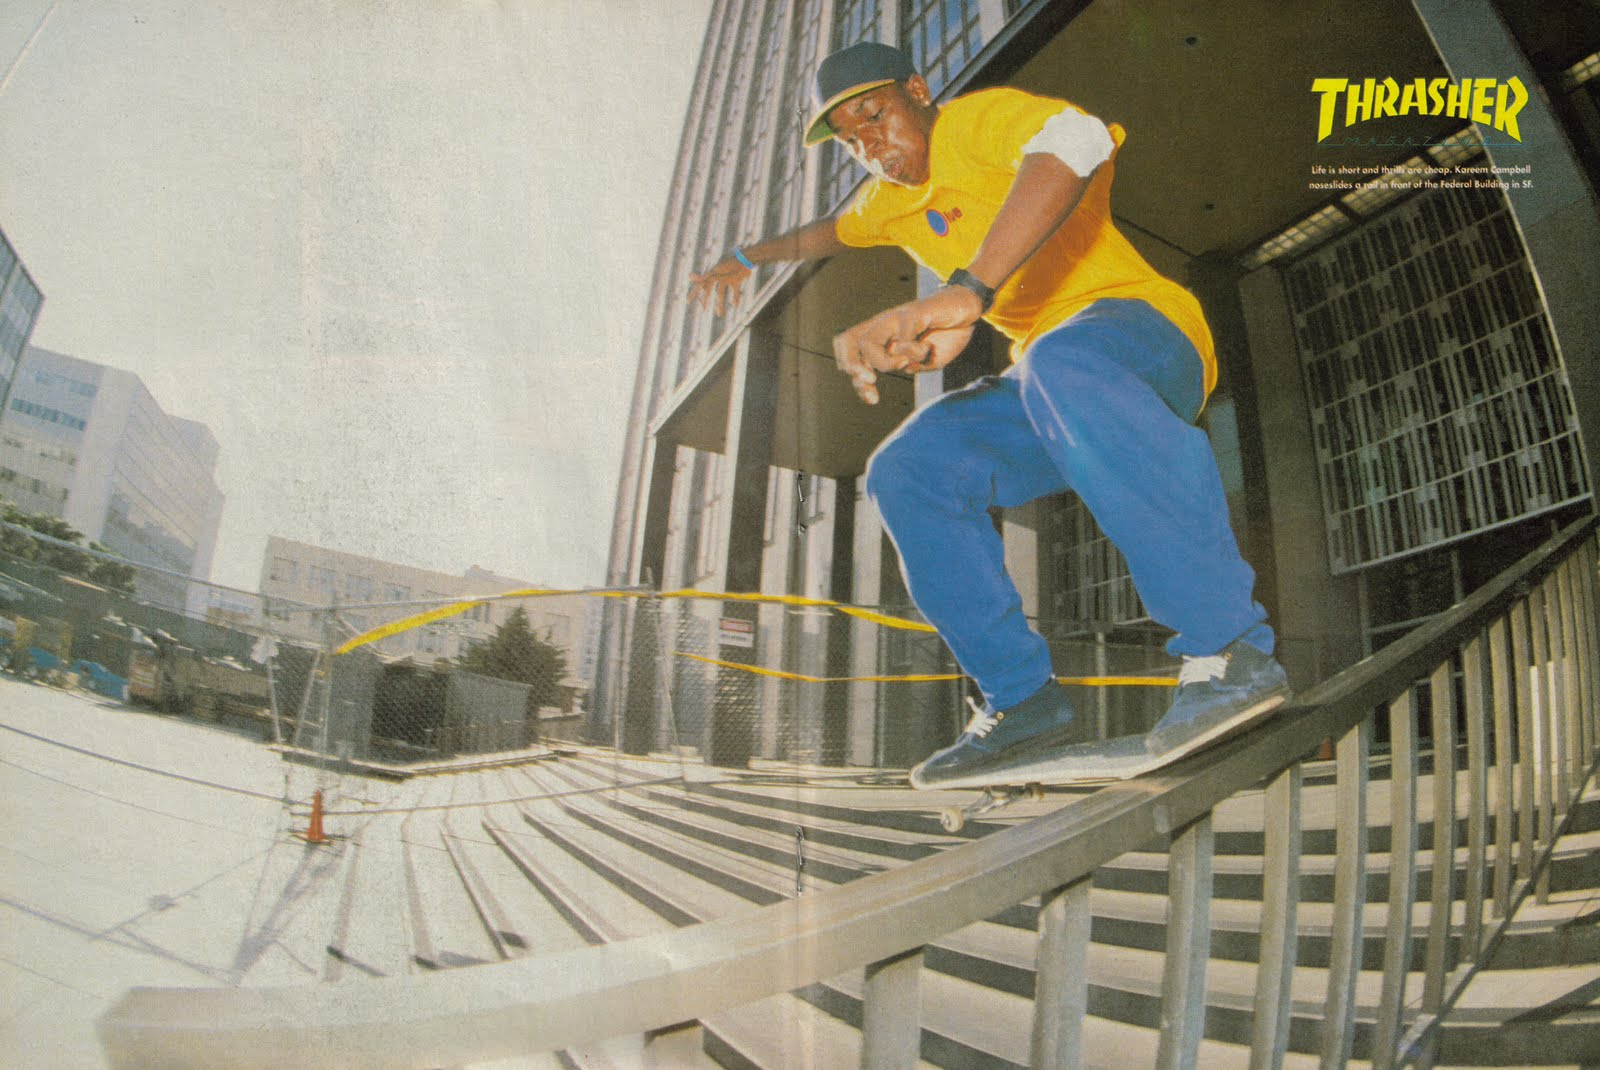 Kareem Campbell Noseslide 1992 None Co